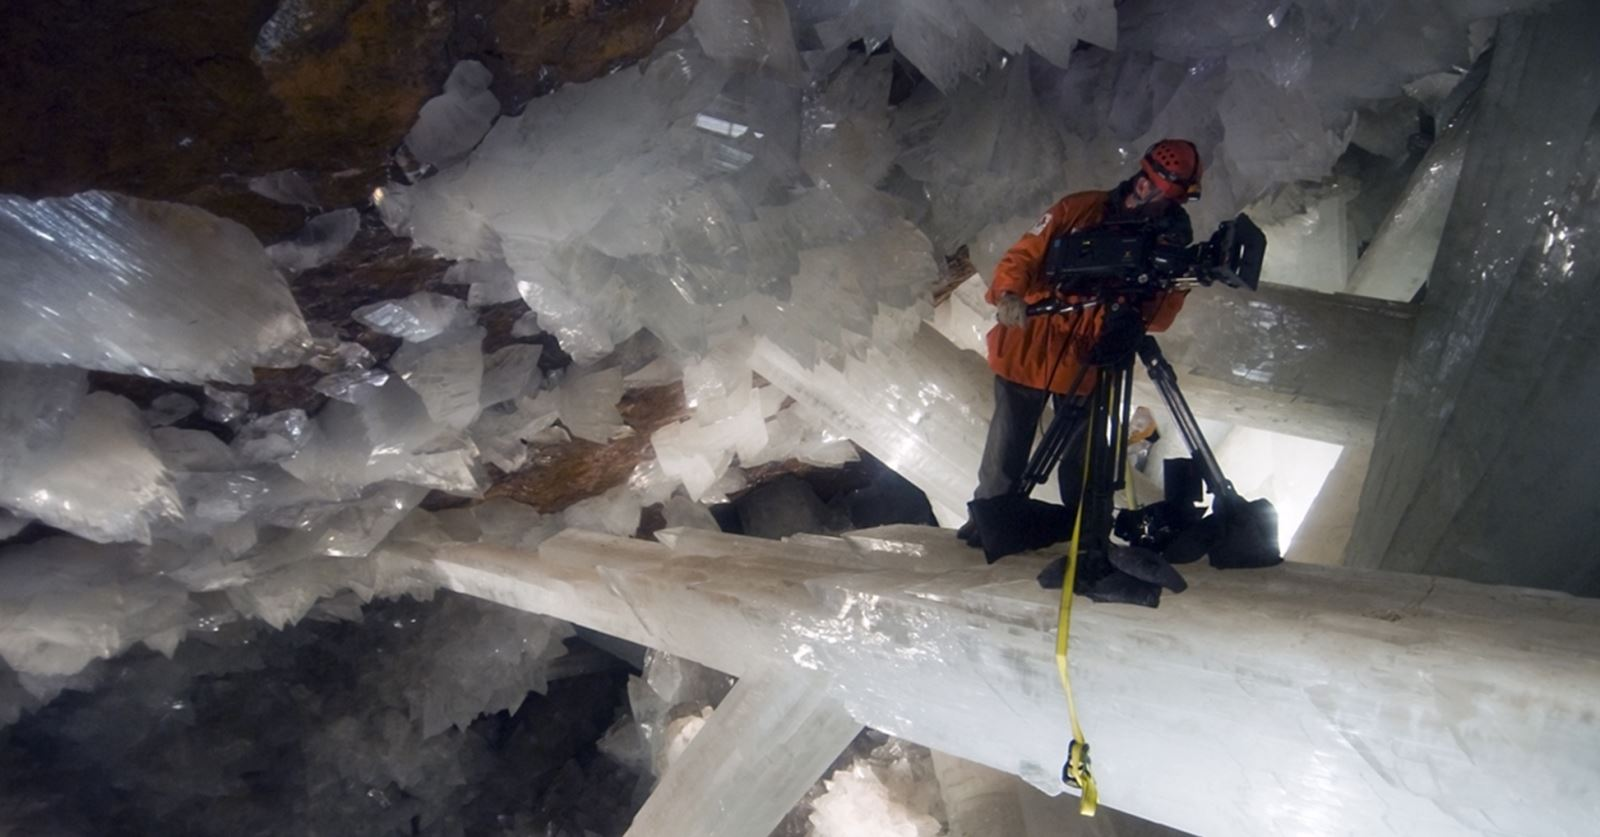 Welcome back to Paul D Stewart, who recently rejoined the GTC; here filming in the 'Cave of Swords', Naica, Mexico